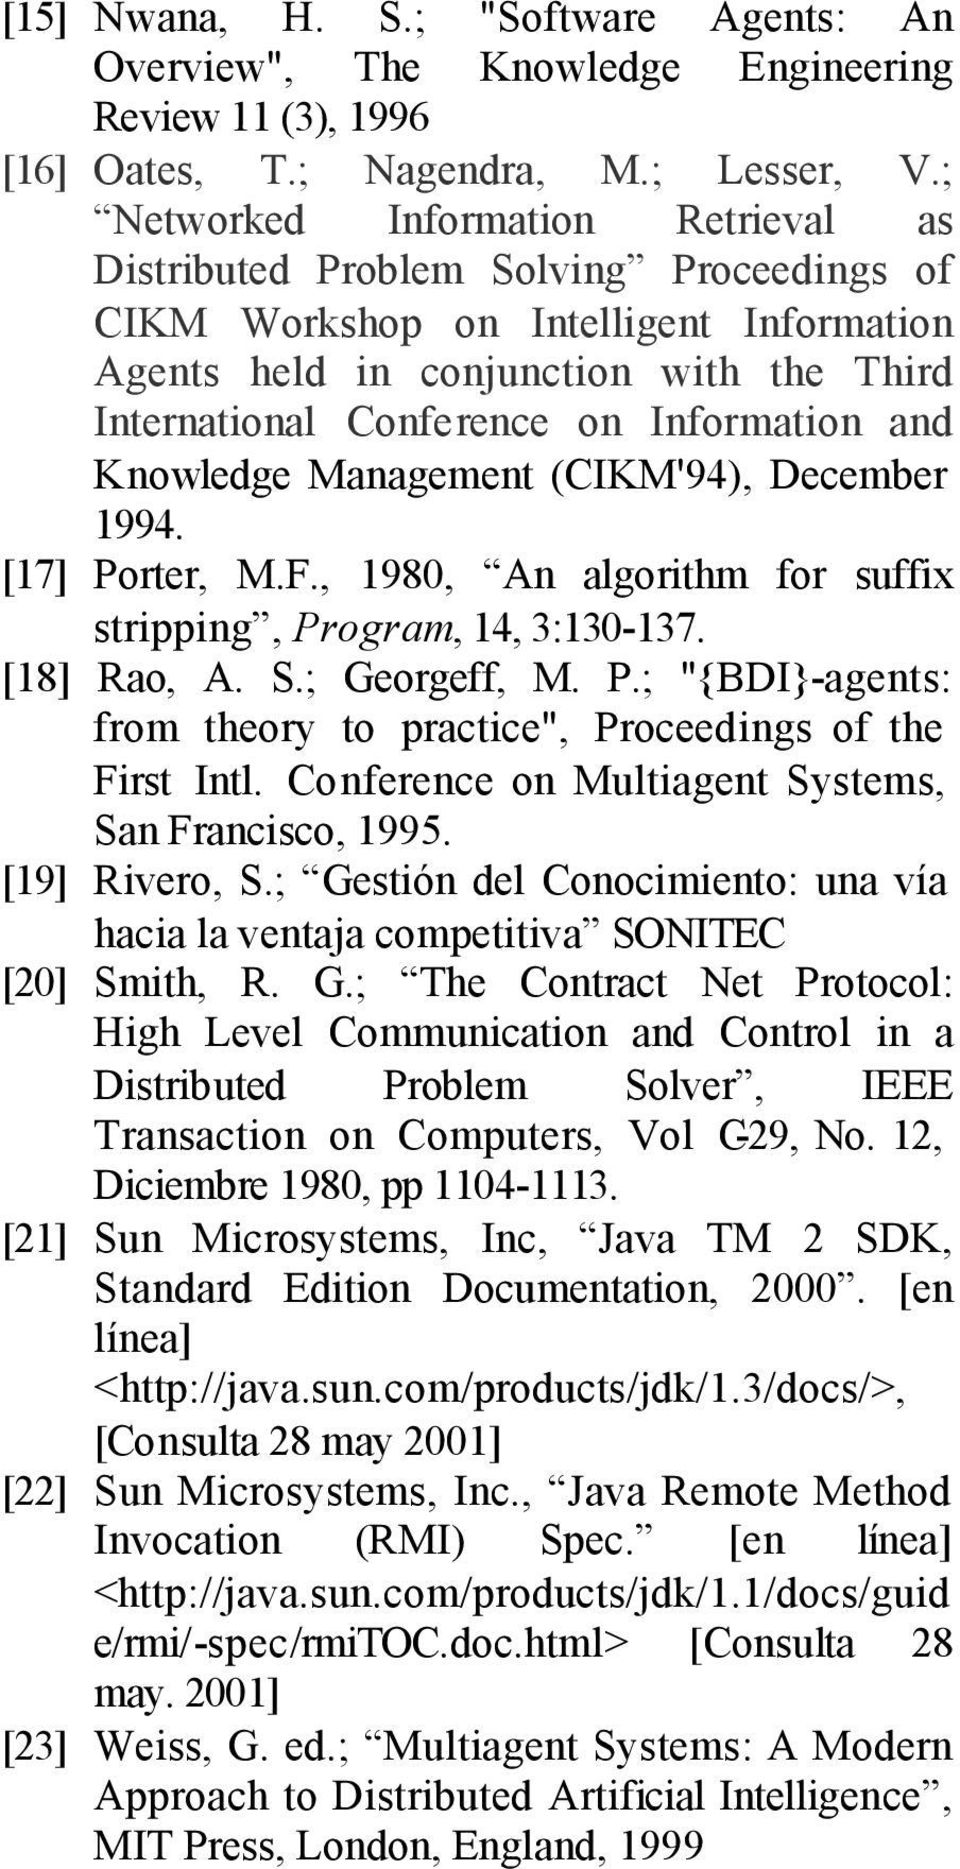 "Information and Knowledge Management (CIKM'94), December 1994. [17] Porter, M.F., 1980, An algorithm for suffix stripping, Program, 14, 3:130-137. [18] Rao, A. S.; Georgeff, M. P.; ""{BDI}-agents: from theory to practice"", Proceedings of the First Intl."